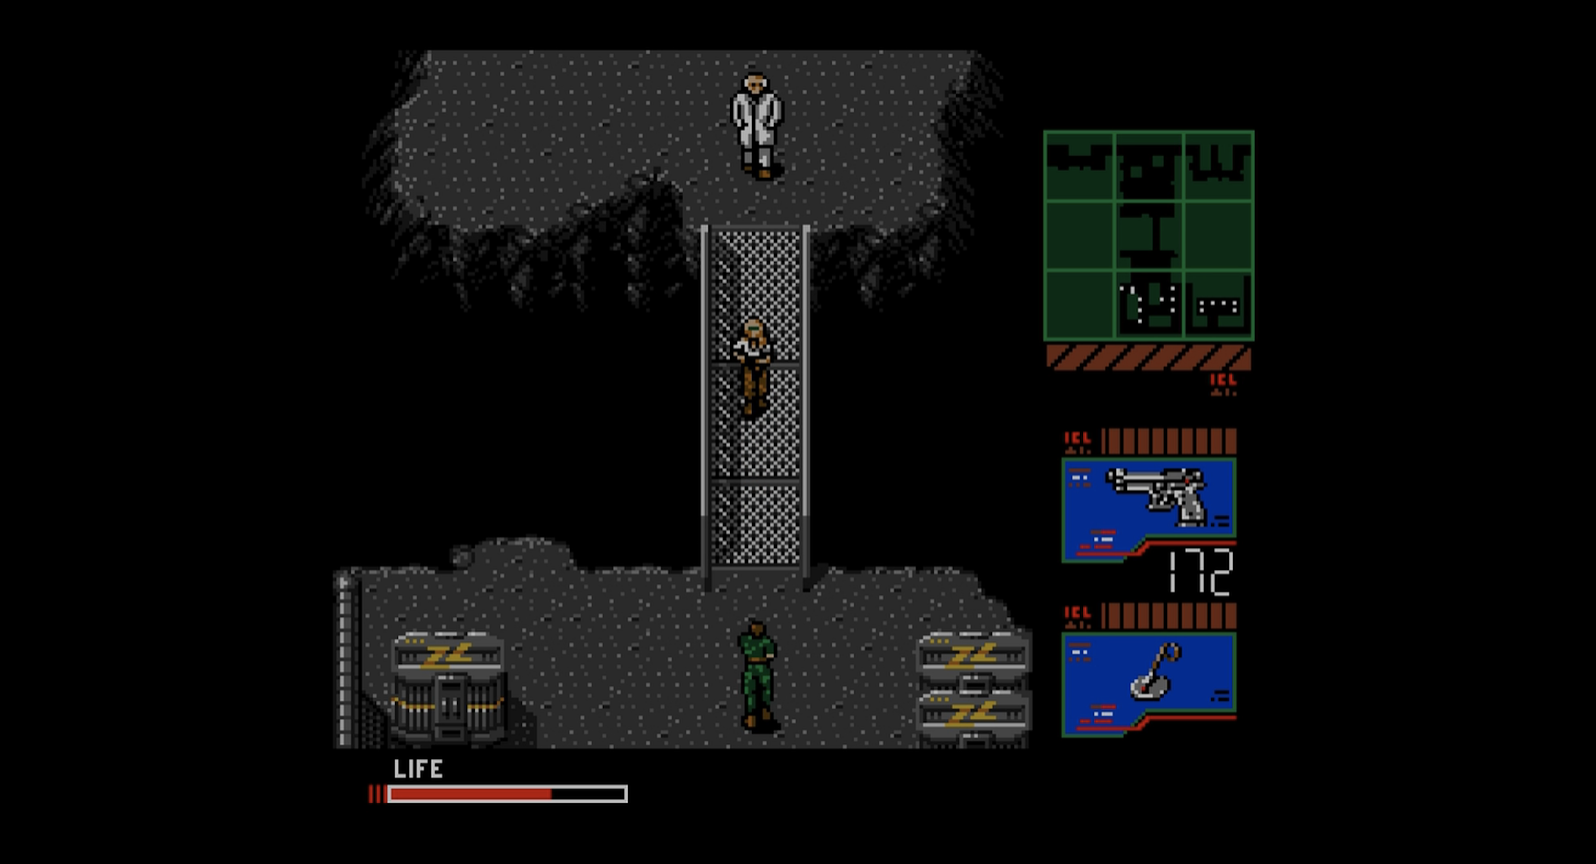 Metal Gear 2 Retrospective: The World Spins Without Snake